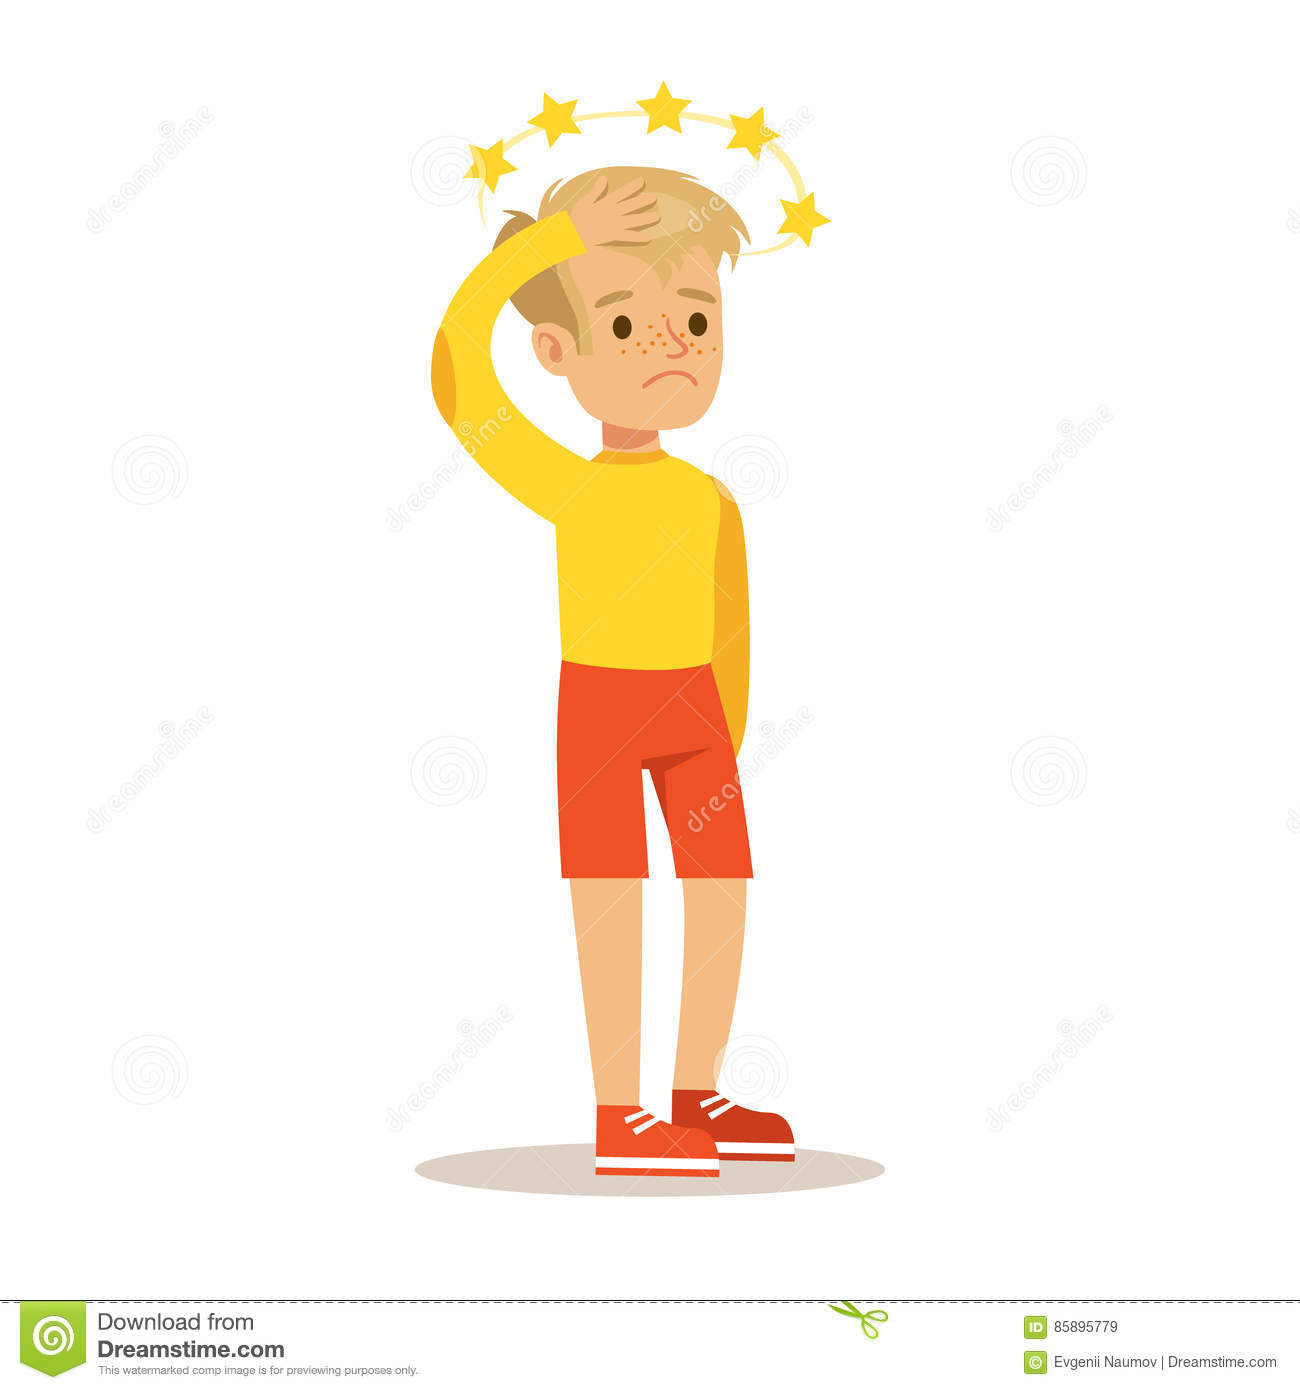 Kids with concussion clipart jpg transparent download Concussion Stock Illustrations – 95 Concussion Stock Illustrations ... jpg transparent download